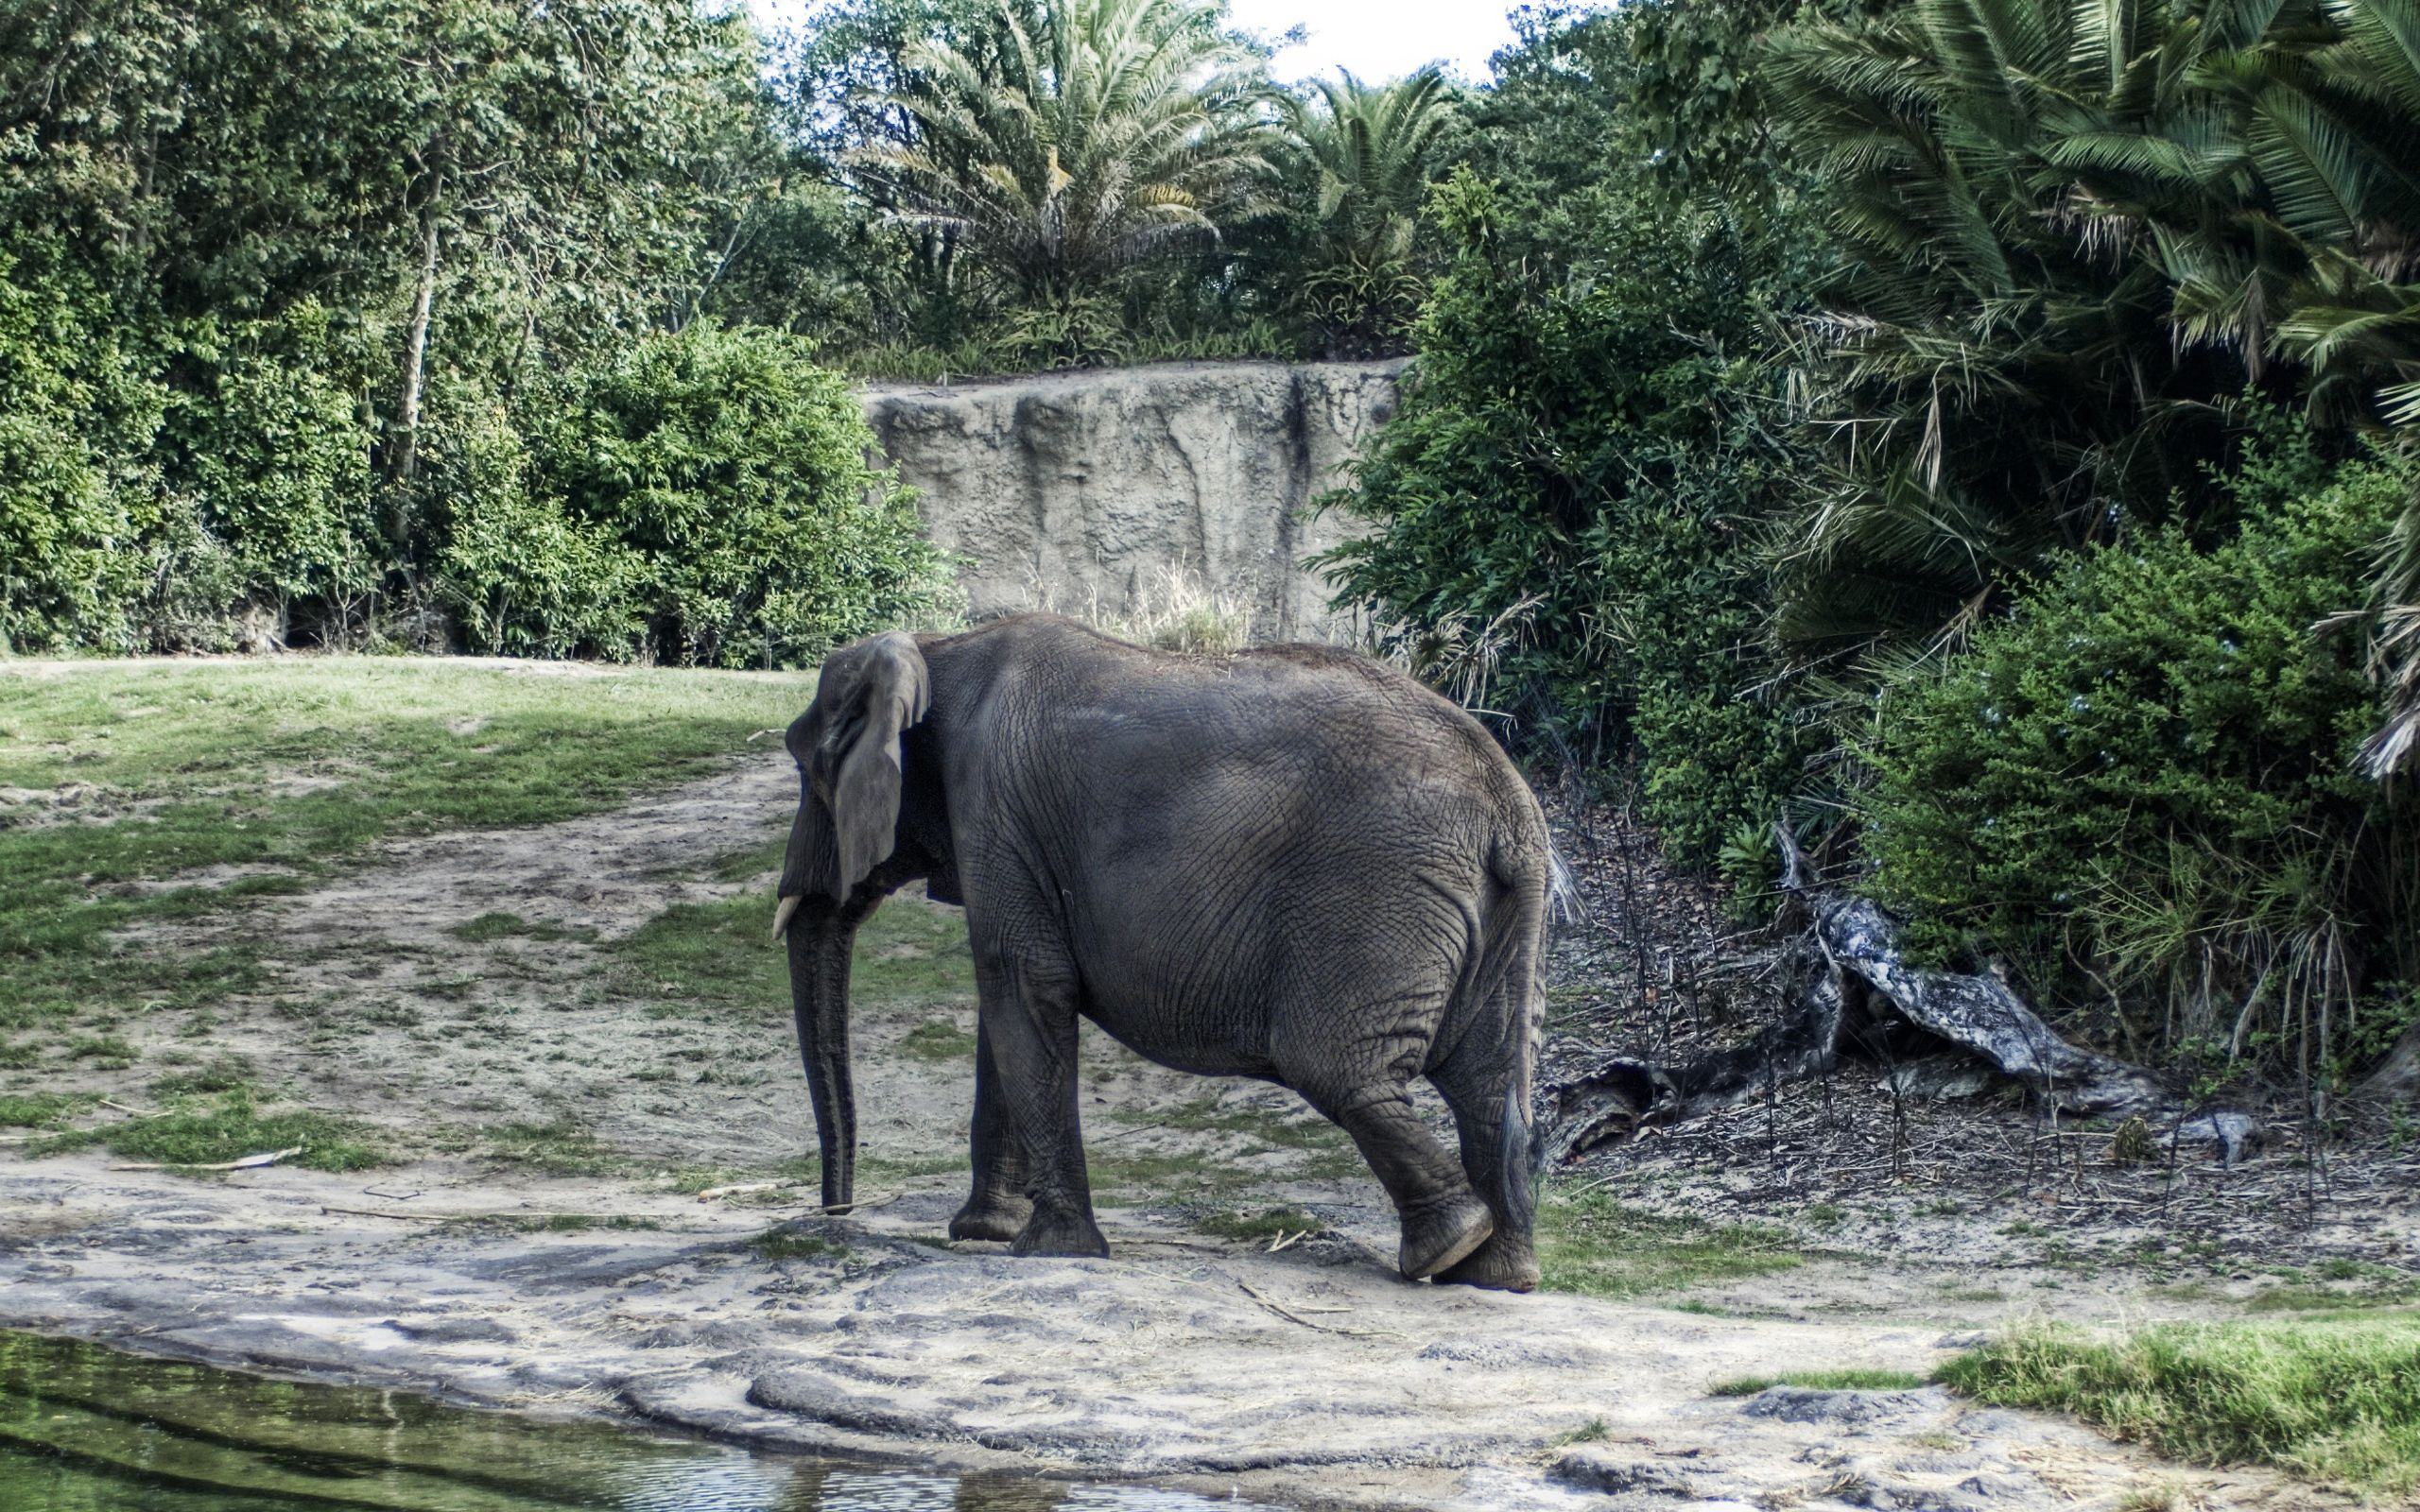 134635 download wallpaper Animals, Elephant, Large, Big, Stroll, Trees screensavers and pictures for free